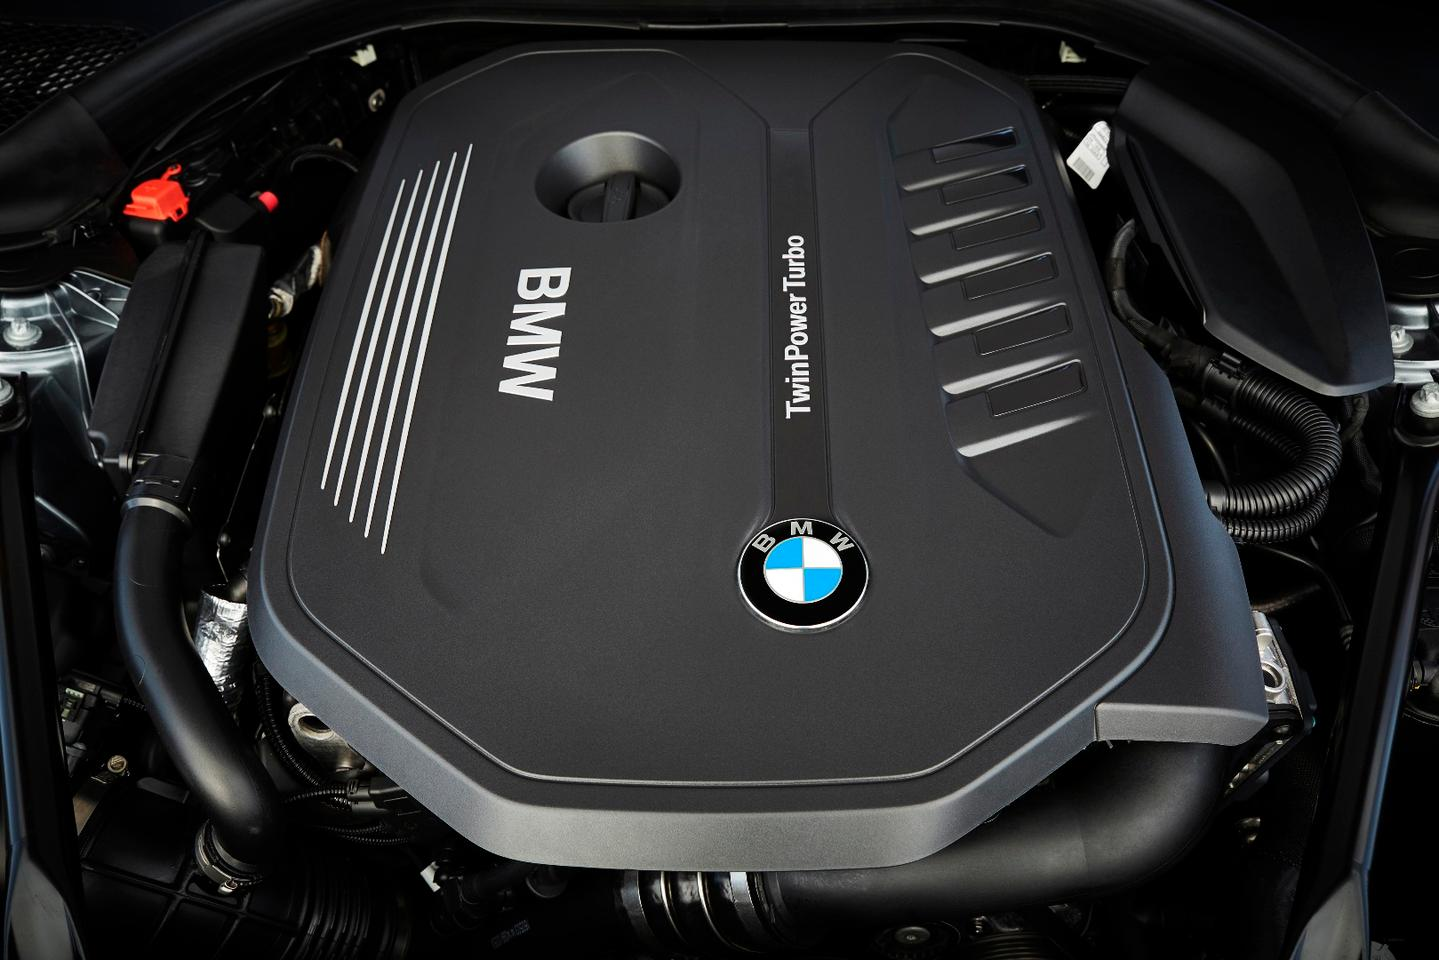 The 530i is the base model with a 2.0-liter four-cylinder engine that's been turbocharged to output 248 hp(185 kW) and 258 lb-ft(350Nm) of torque